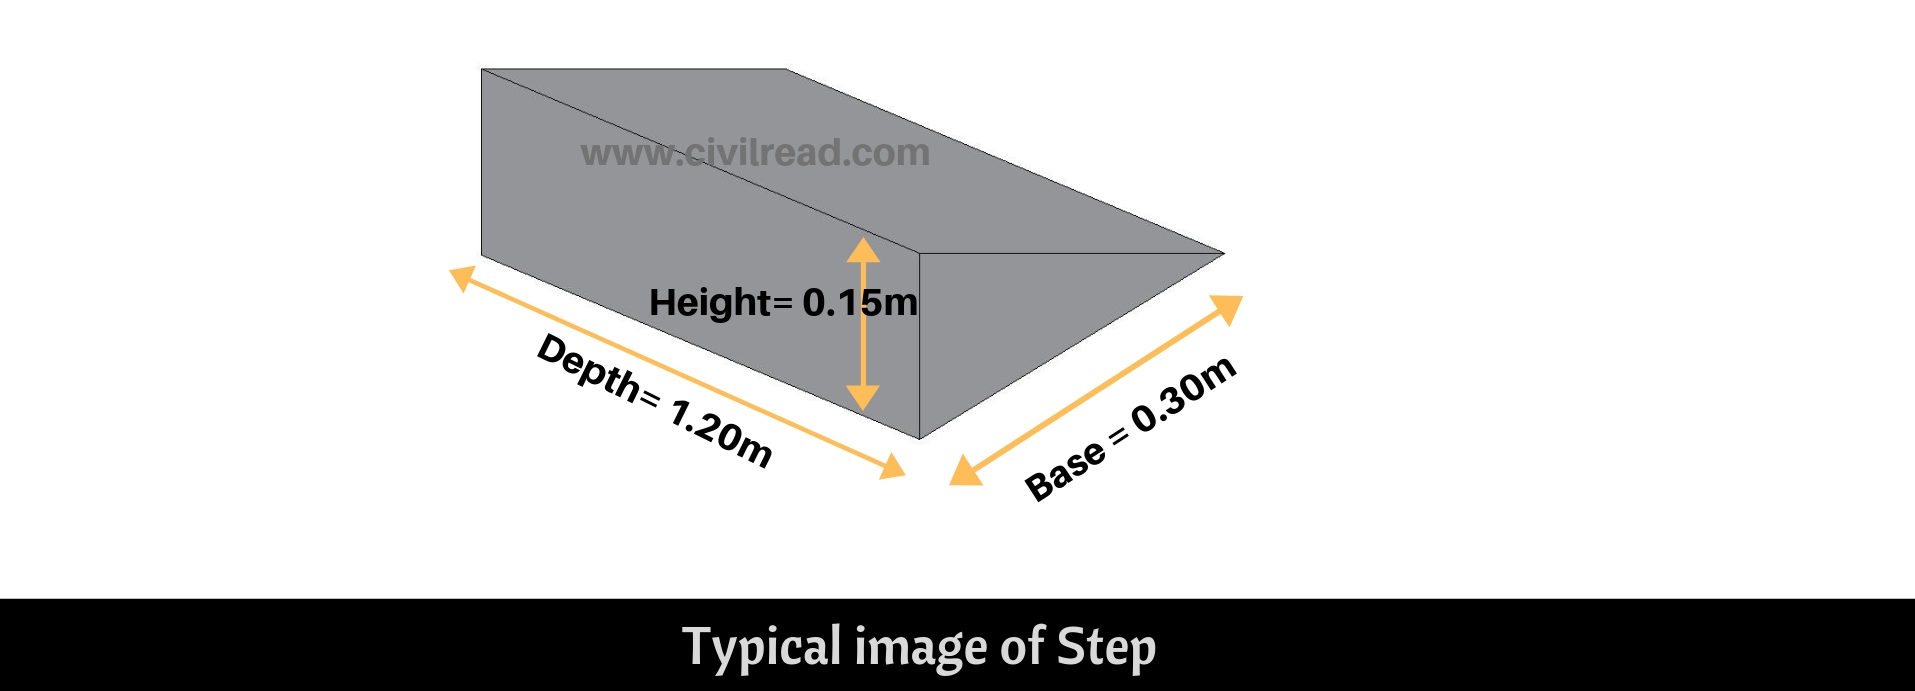 Volume of concrete calculation for single step